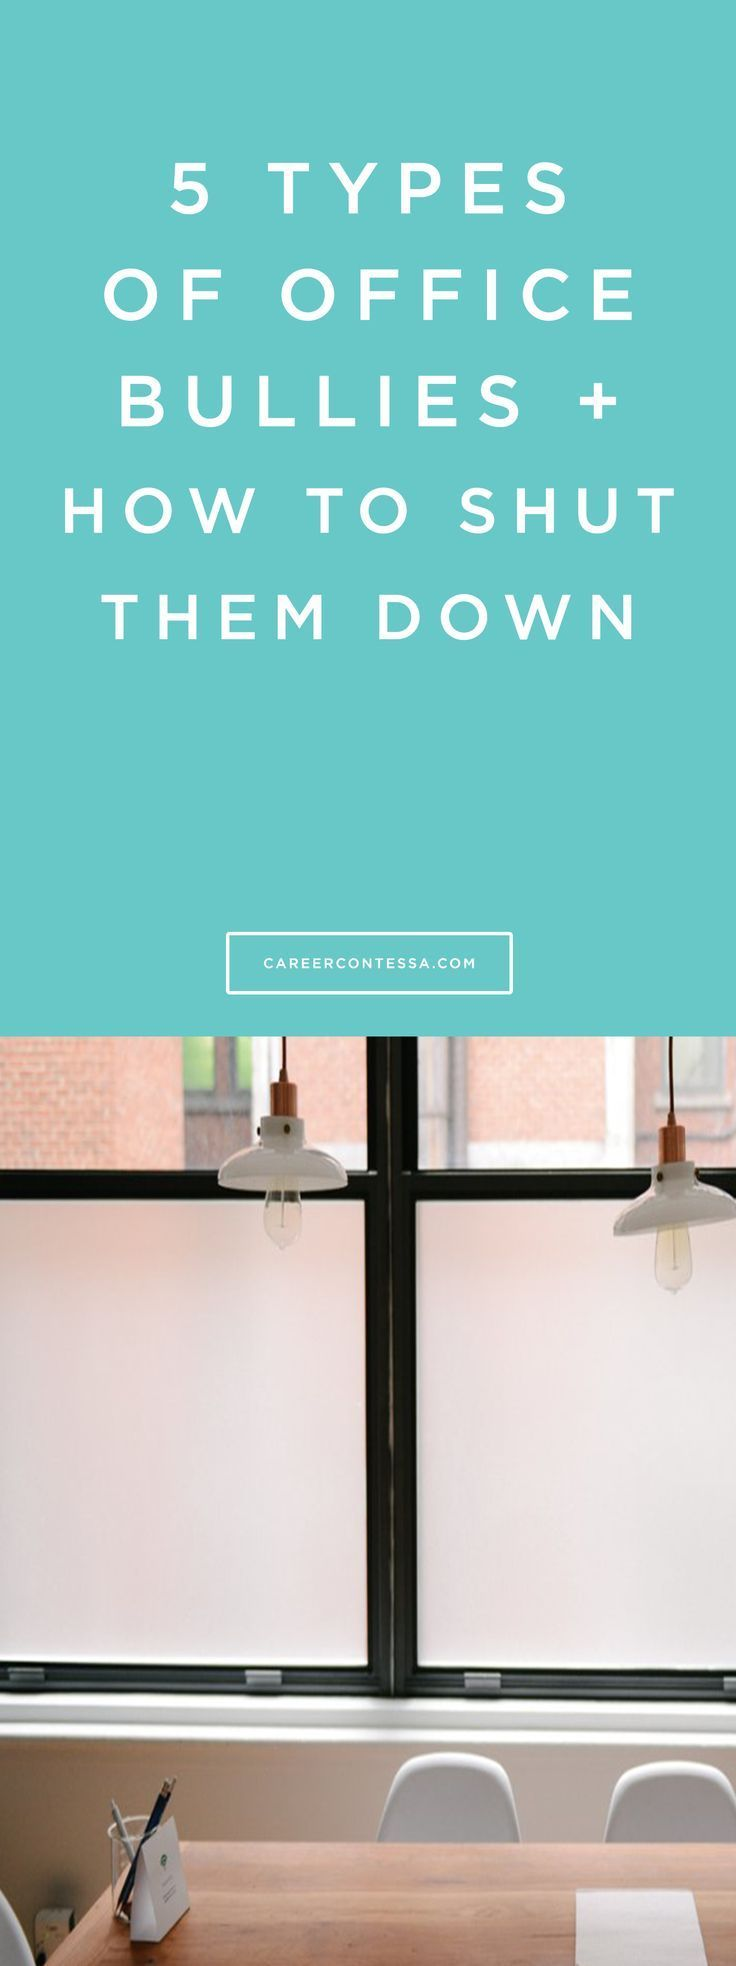 5 Unavoidable Office Bullies (And How To Shut Them Down)